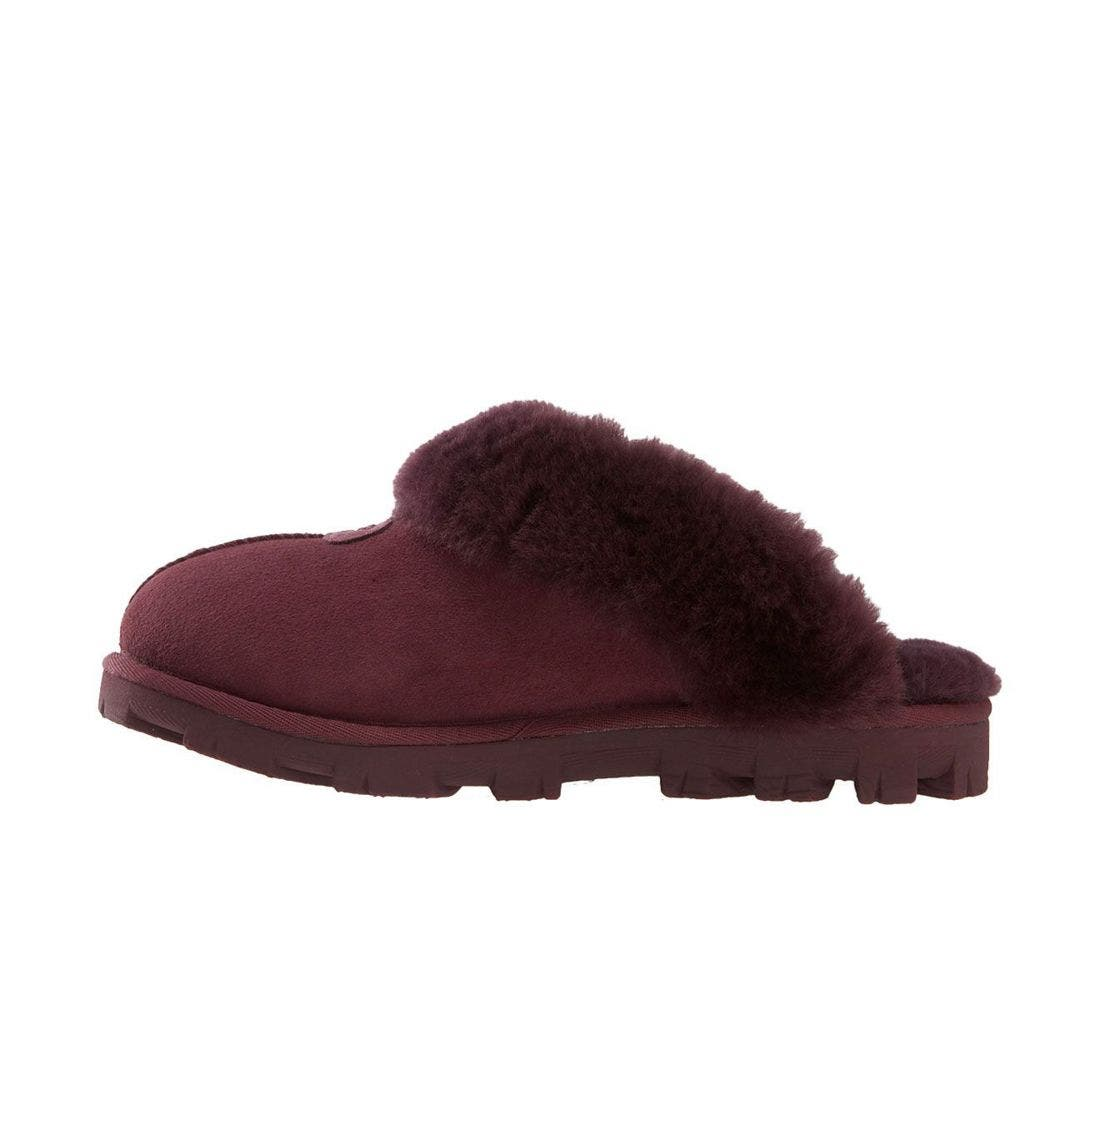 ,                             Genuine Shearling Slipper,                             Alternate thumbnail 133, color,                             504